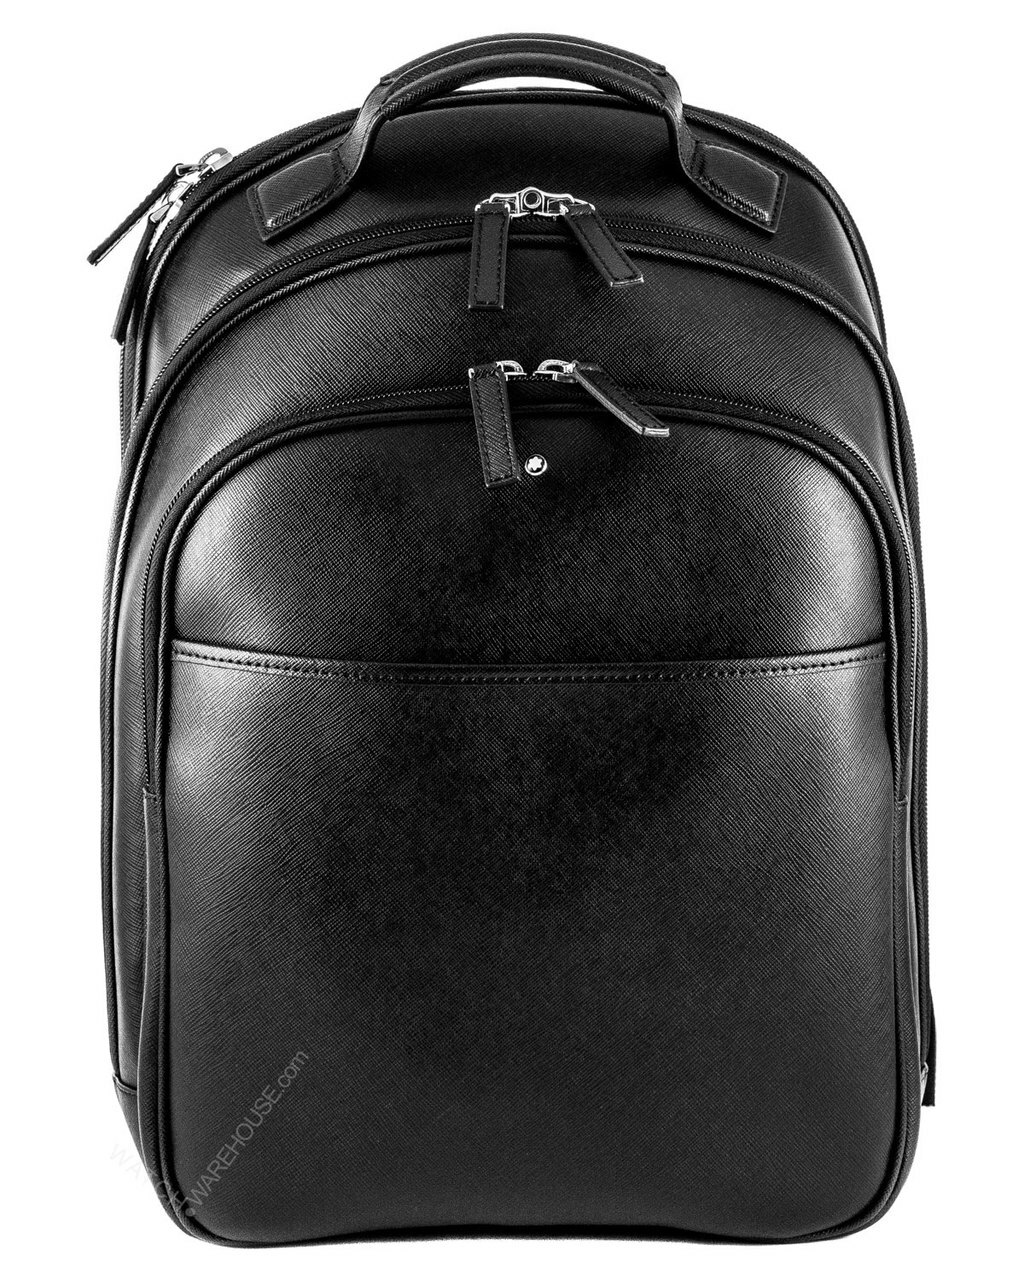 Montblanc sartorial small black italian calfskin leather backpack